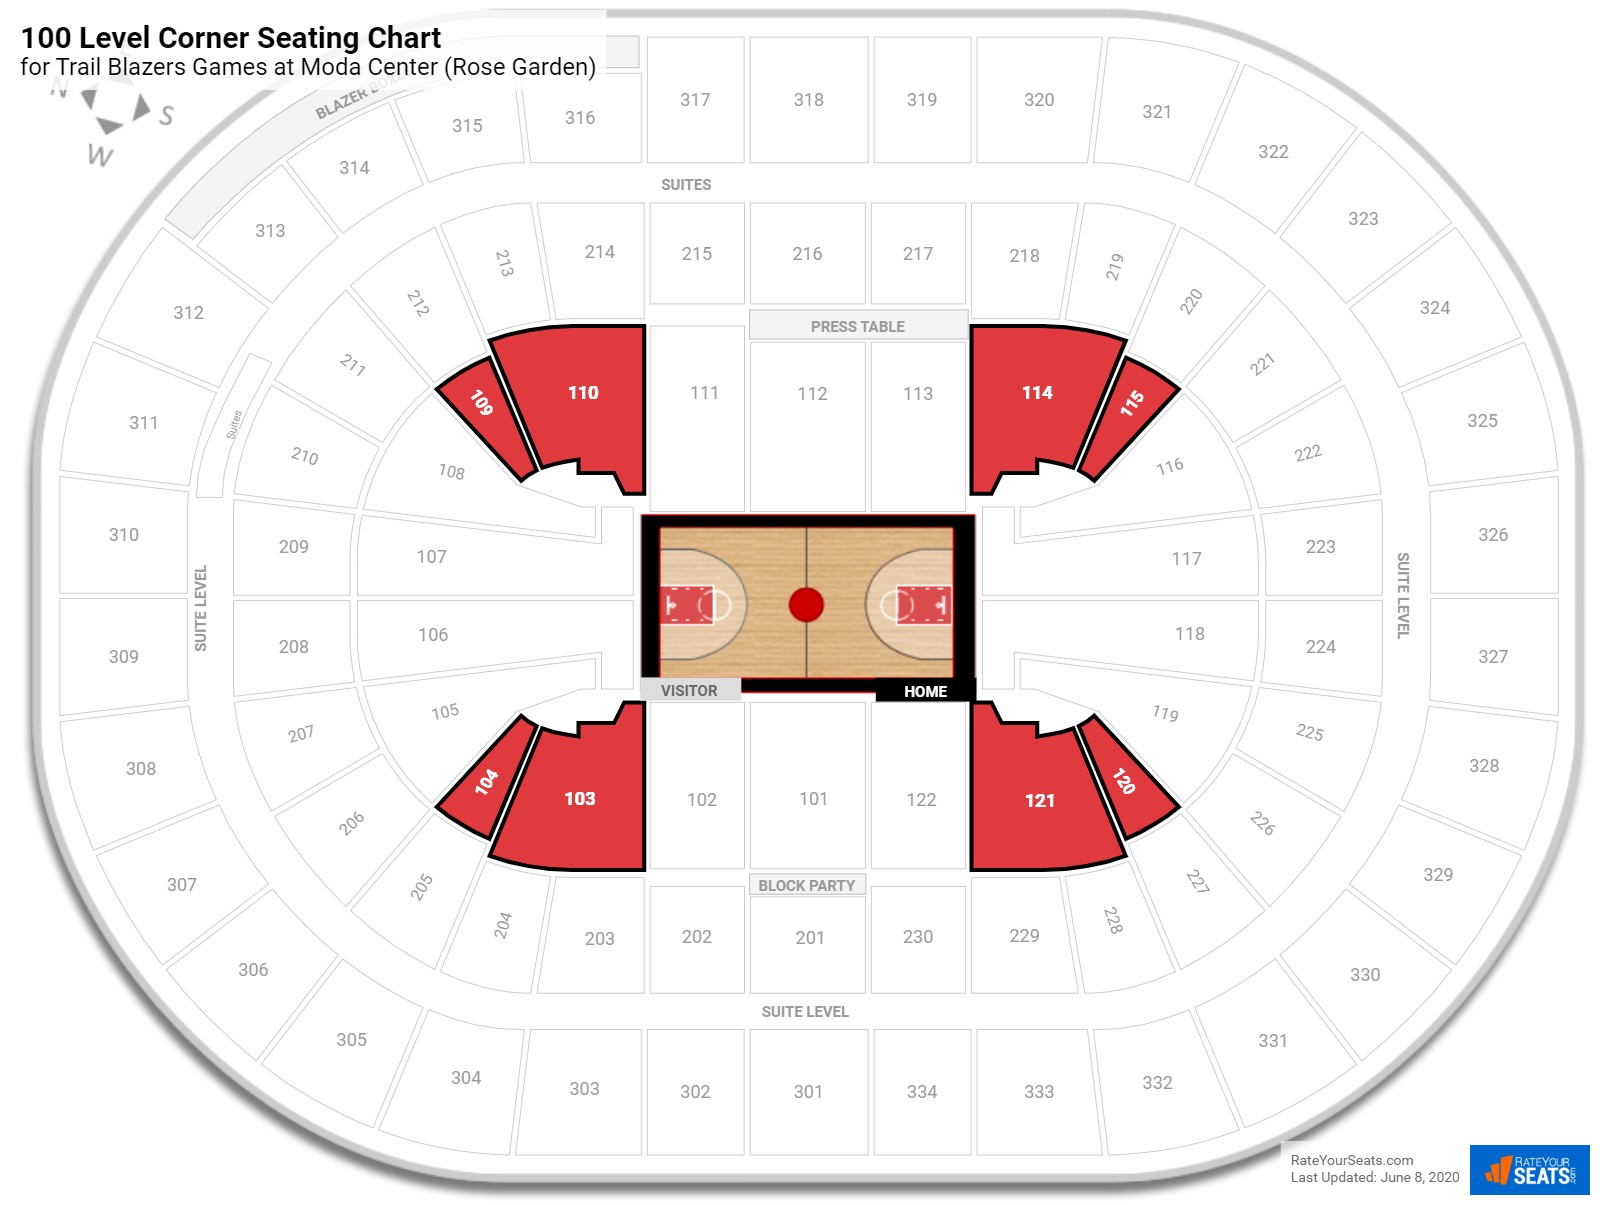 Moda Center (Rose Garden) 100 Level Corner seating chart